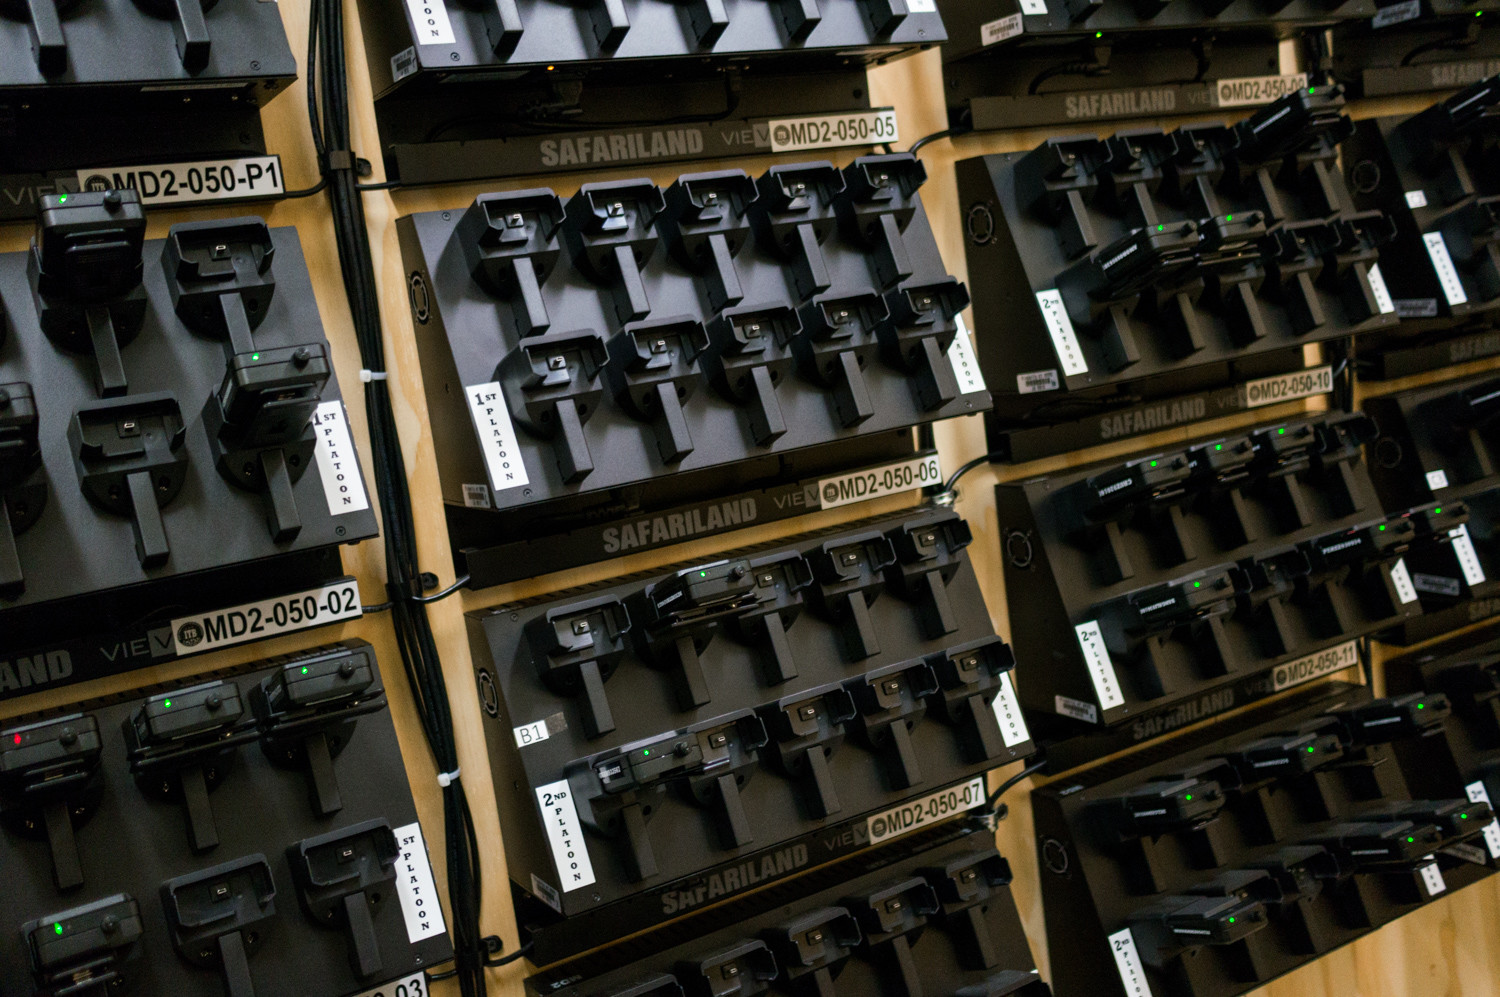 A wall of docks in the 50th Precinct serves both to recharge and upload data from body cameras worn by patrol officers. The Civilian Complaint Review Board, an independent police oversight agency, relies on video evidence as an important tool in its investigations.